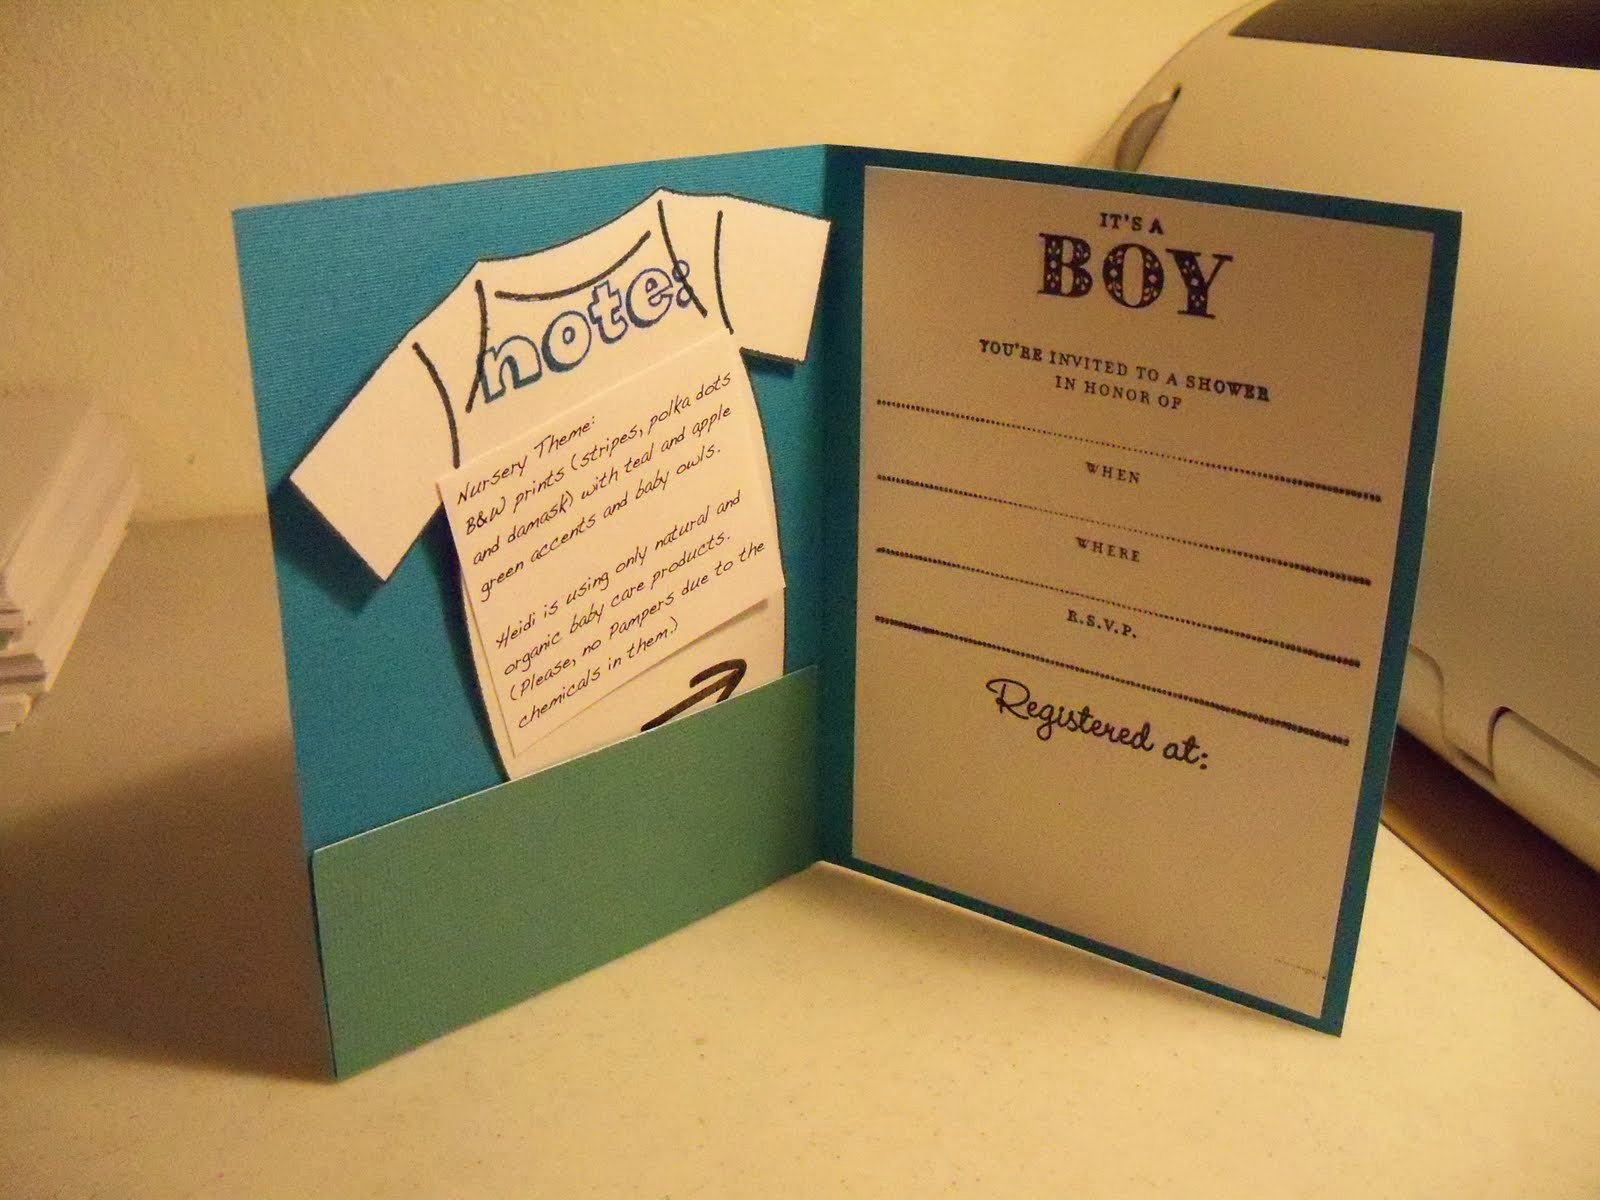 Cheap Baby Shower Invitation Best Of Cheap Baby Shower Invitation for Boy